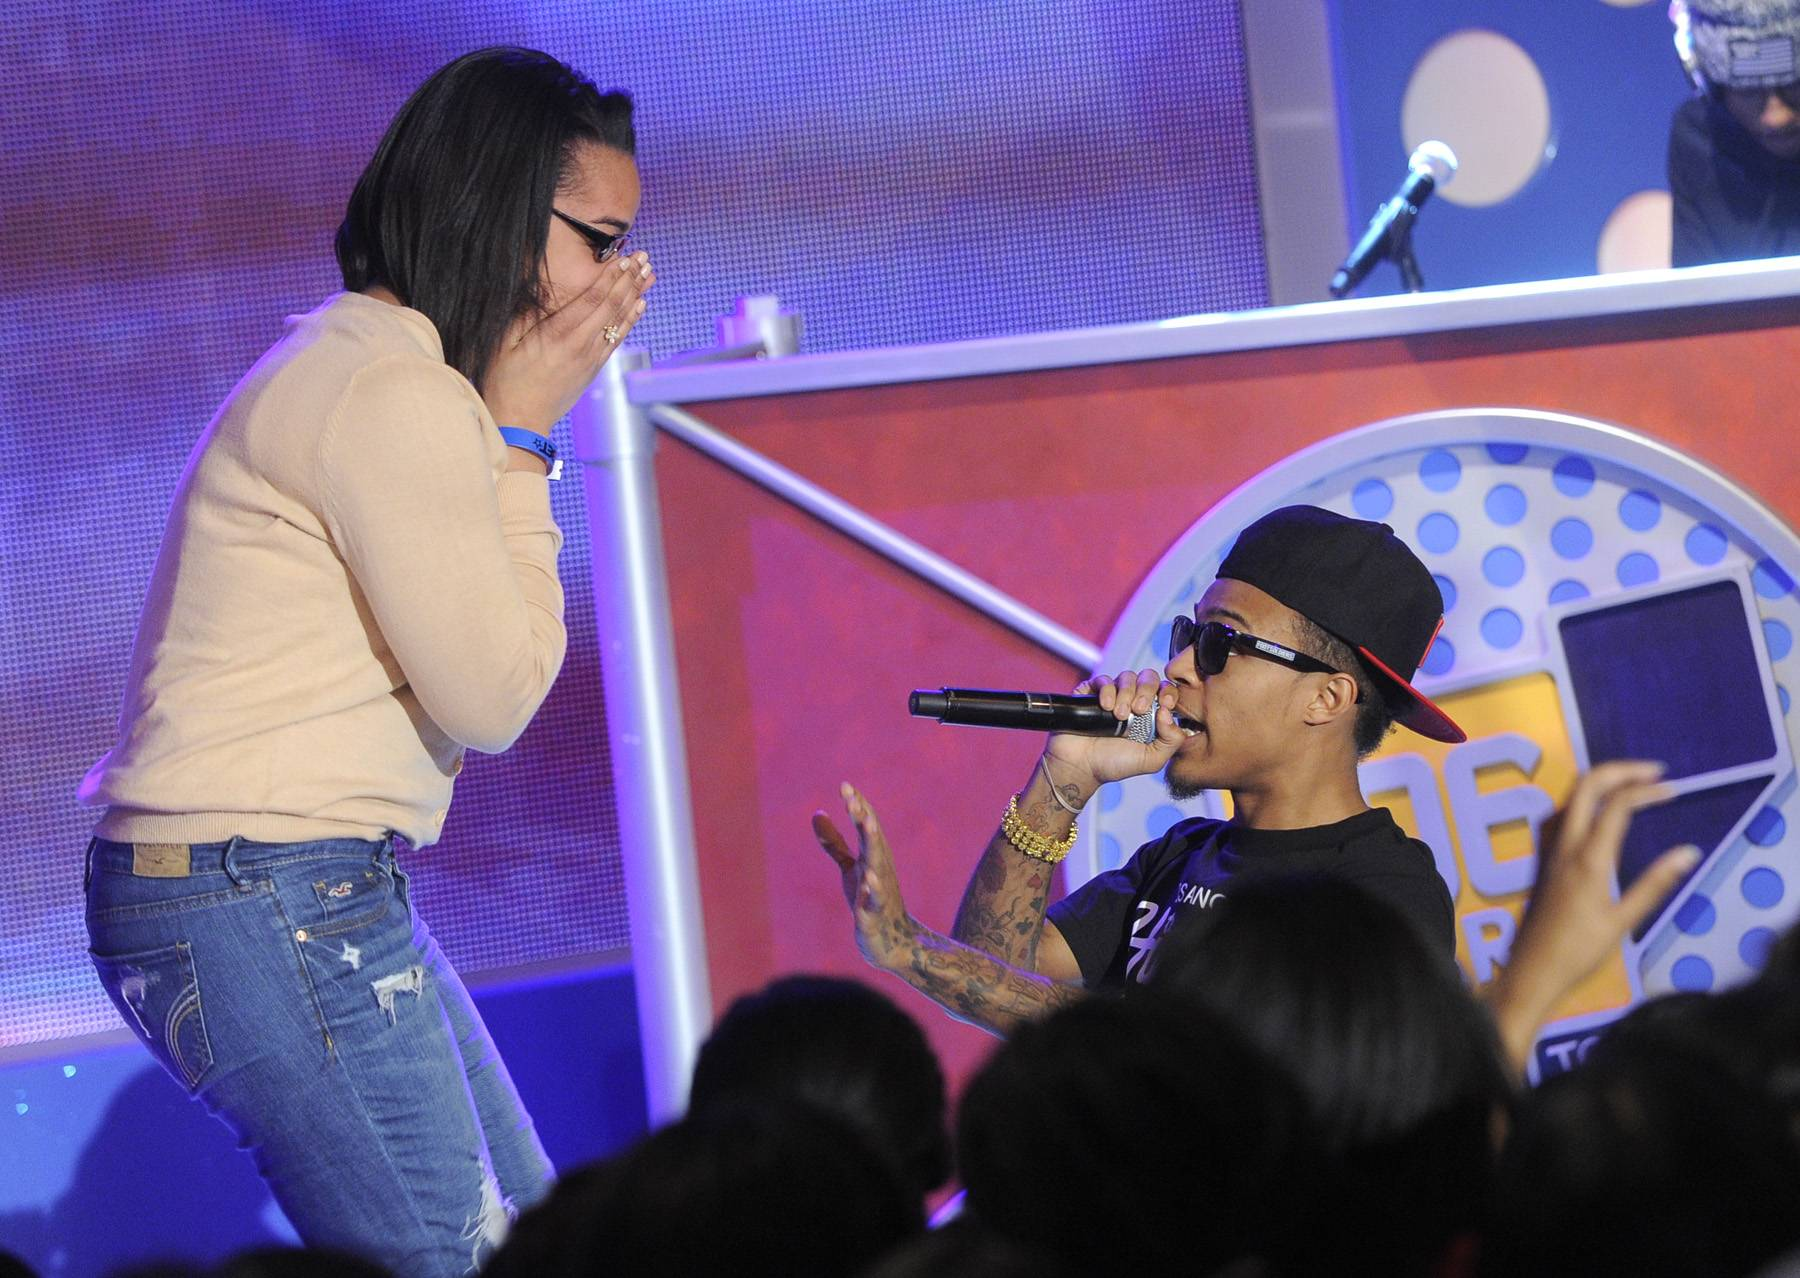 On My Knees\r - Bow Wow on set at BET's 106 & Park. (Photo: John Ricard / BET)